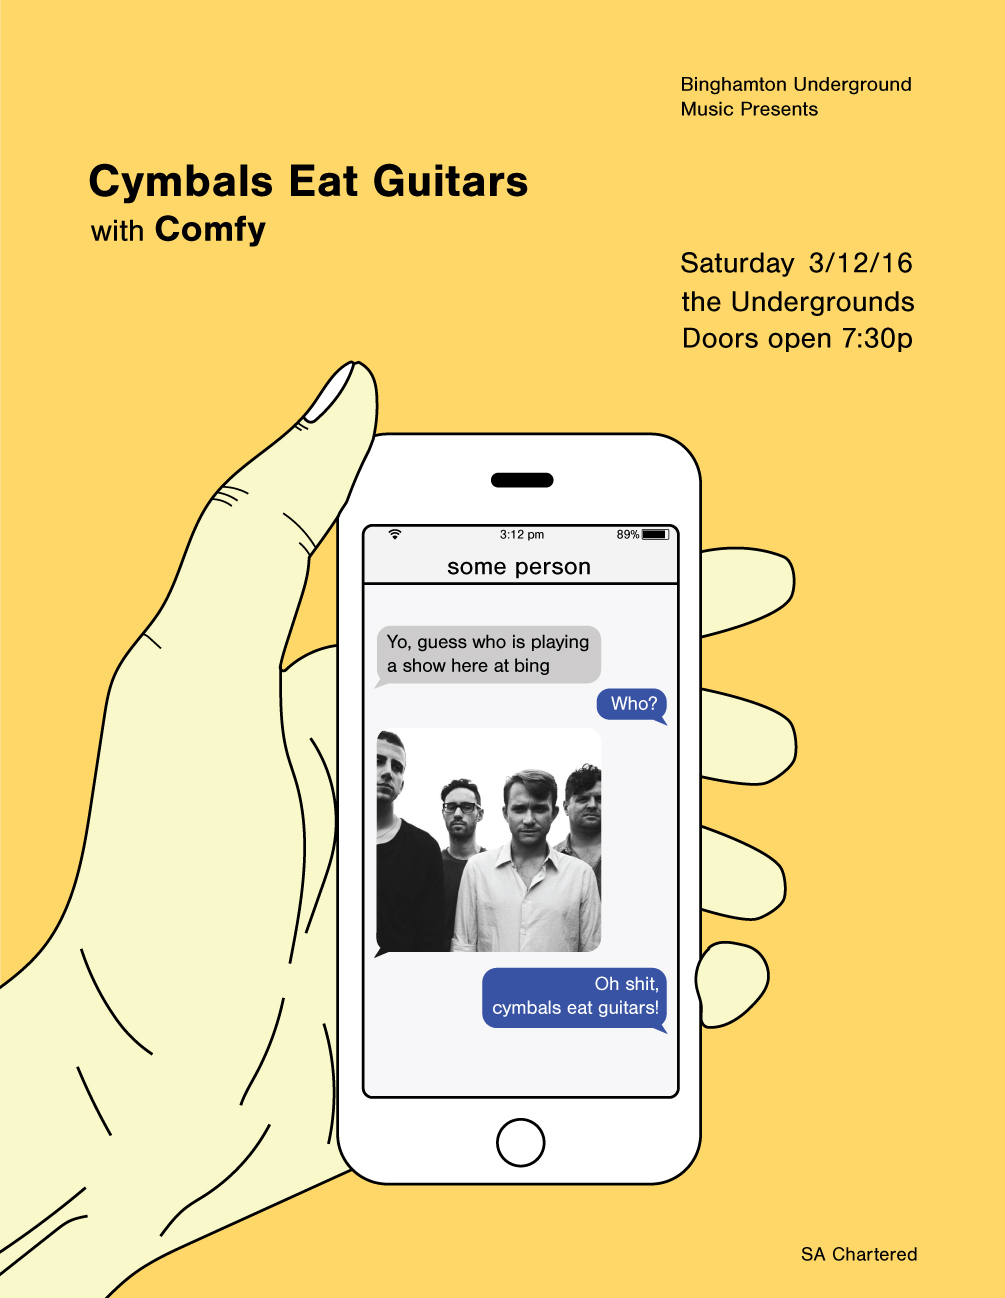 Concert poster for Cymbals Eat Guitars on phone